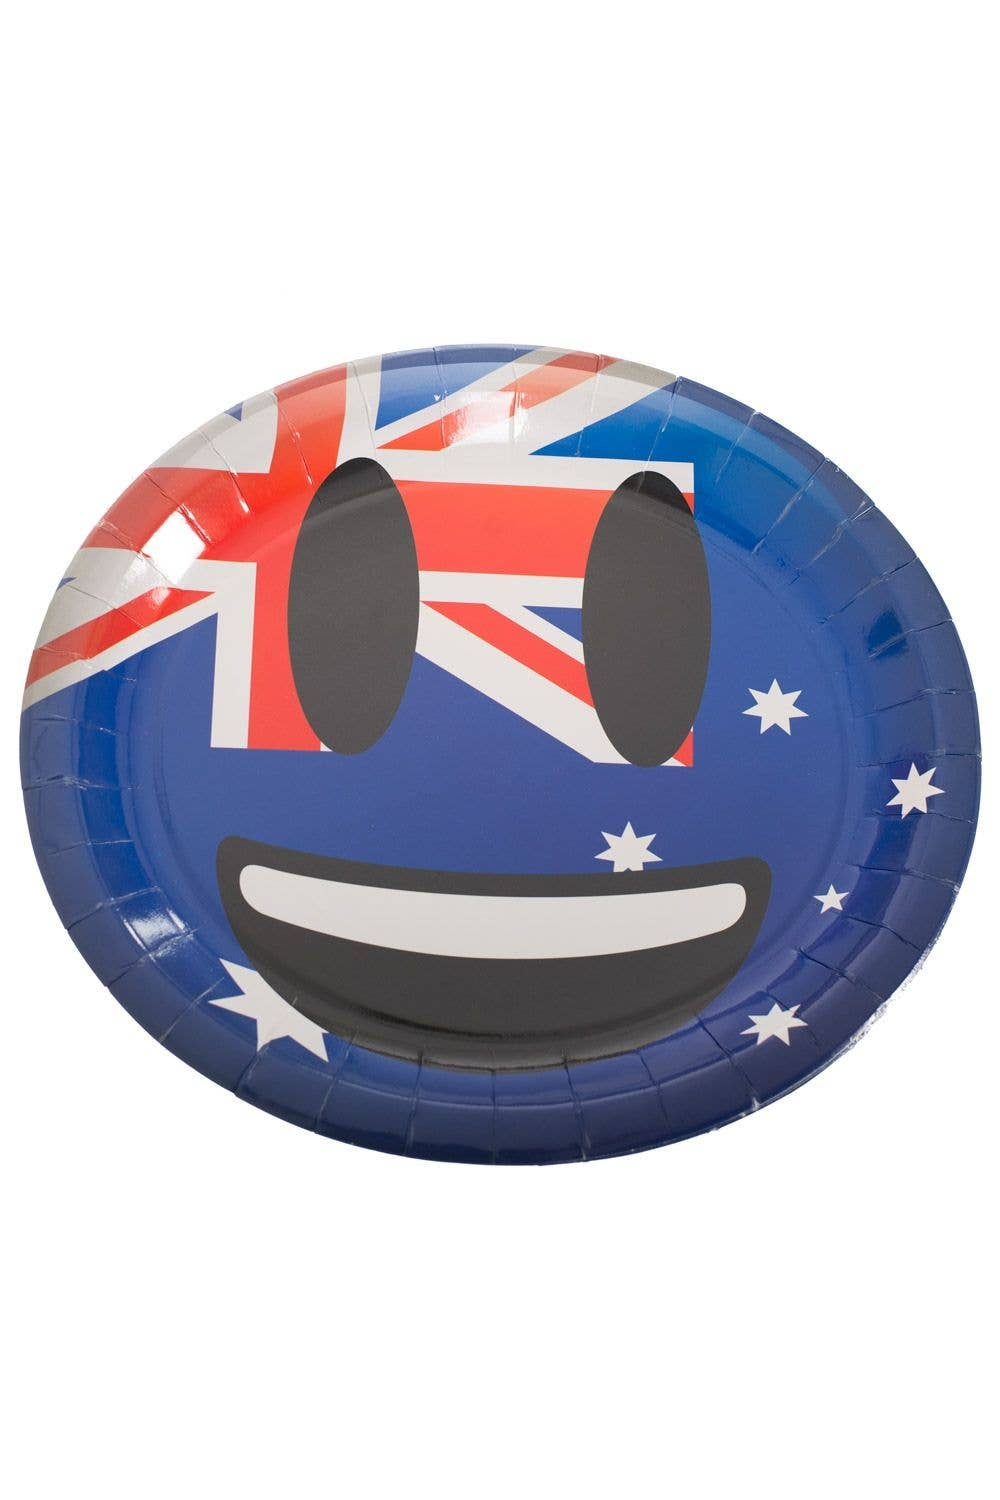 Smile Face Emoticon Emoji Aussie Flag Australia Day Large Paper Plates  sc 1 st  Heaven Costumes & Emoji Smiley Paper Plates | Australia Day Aussie Flag Party Plates